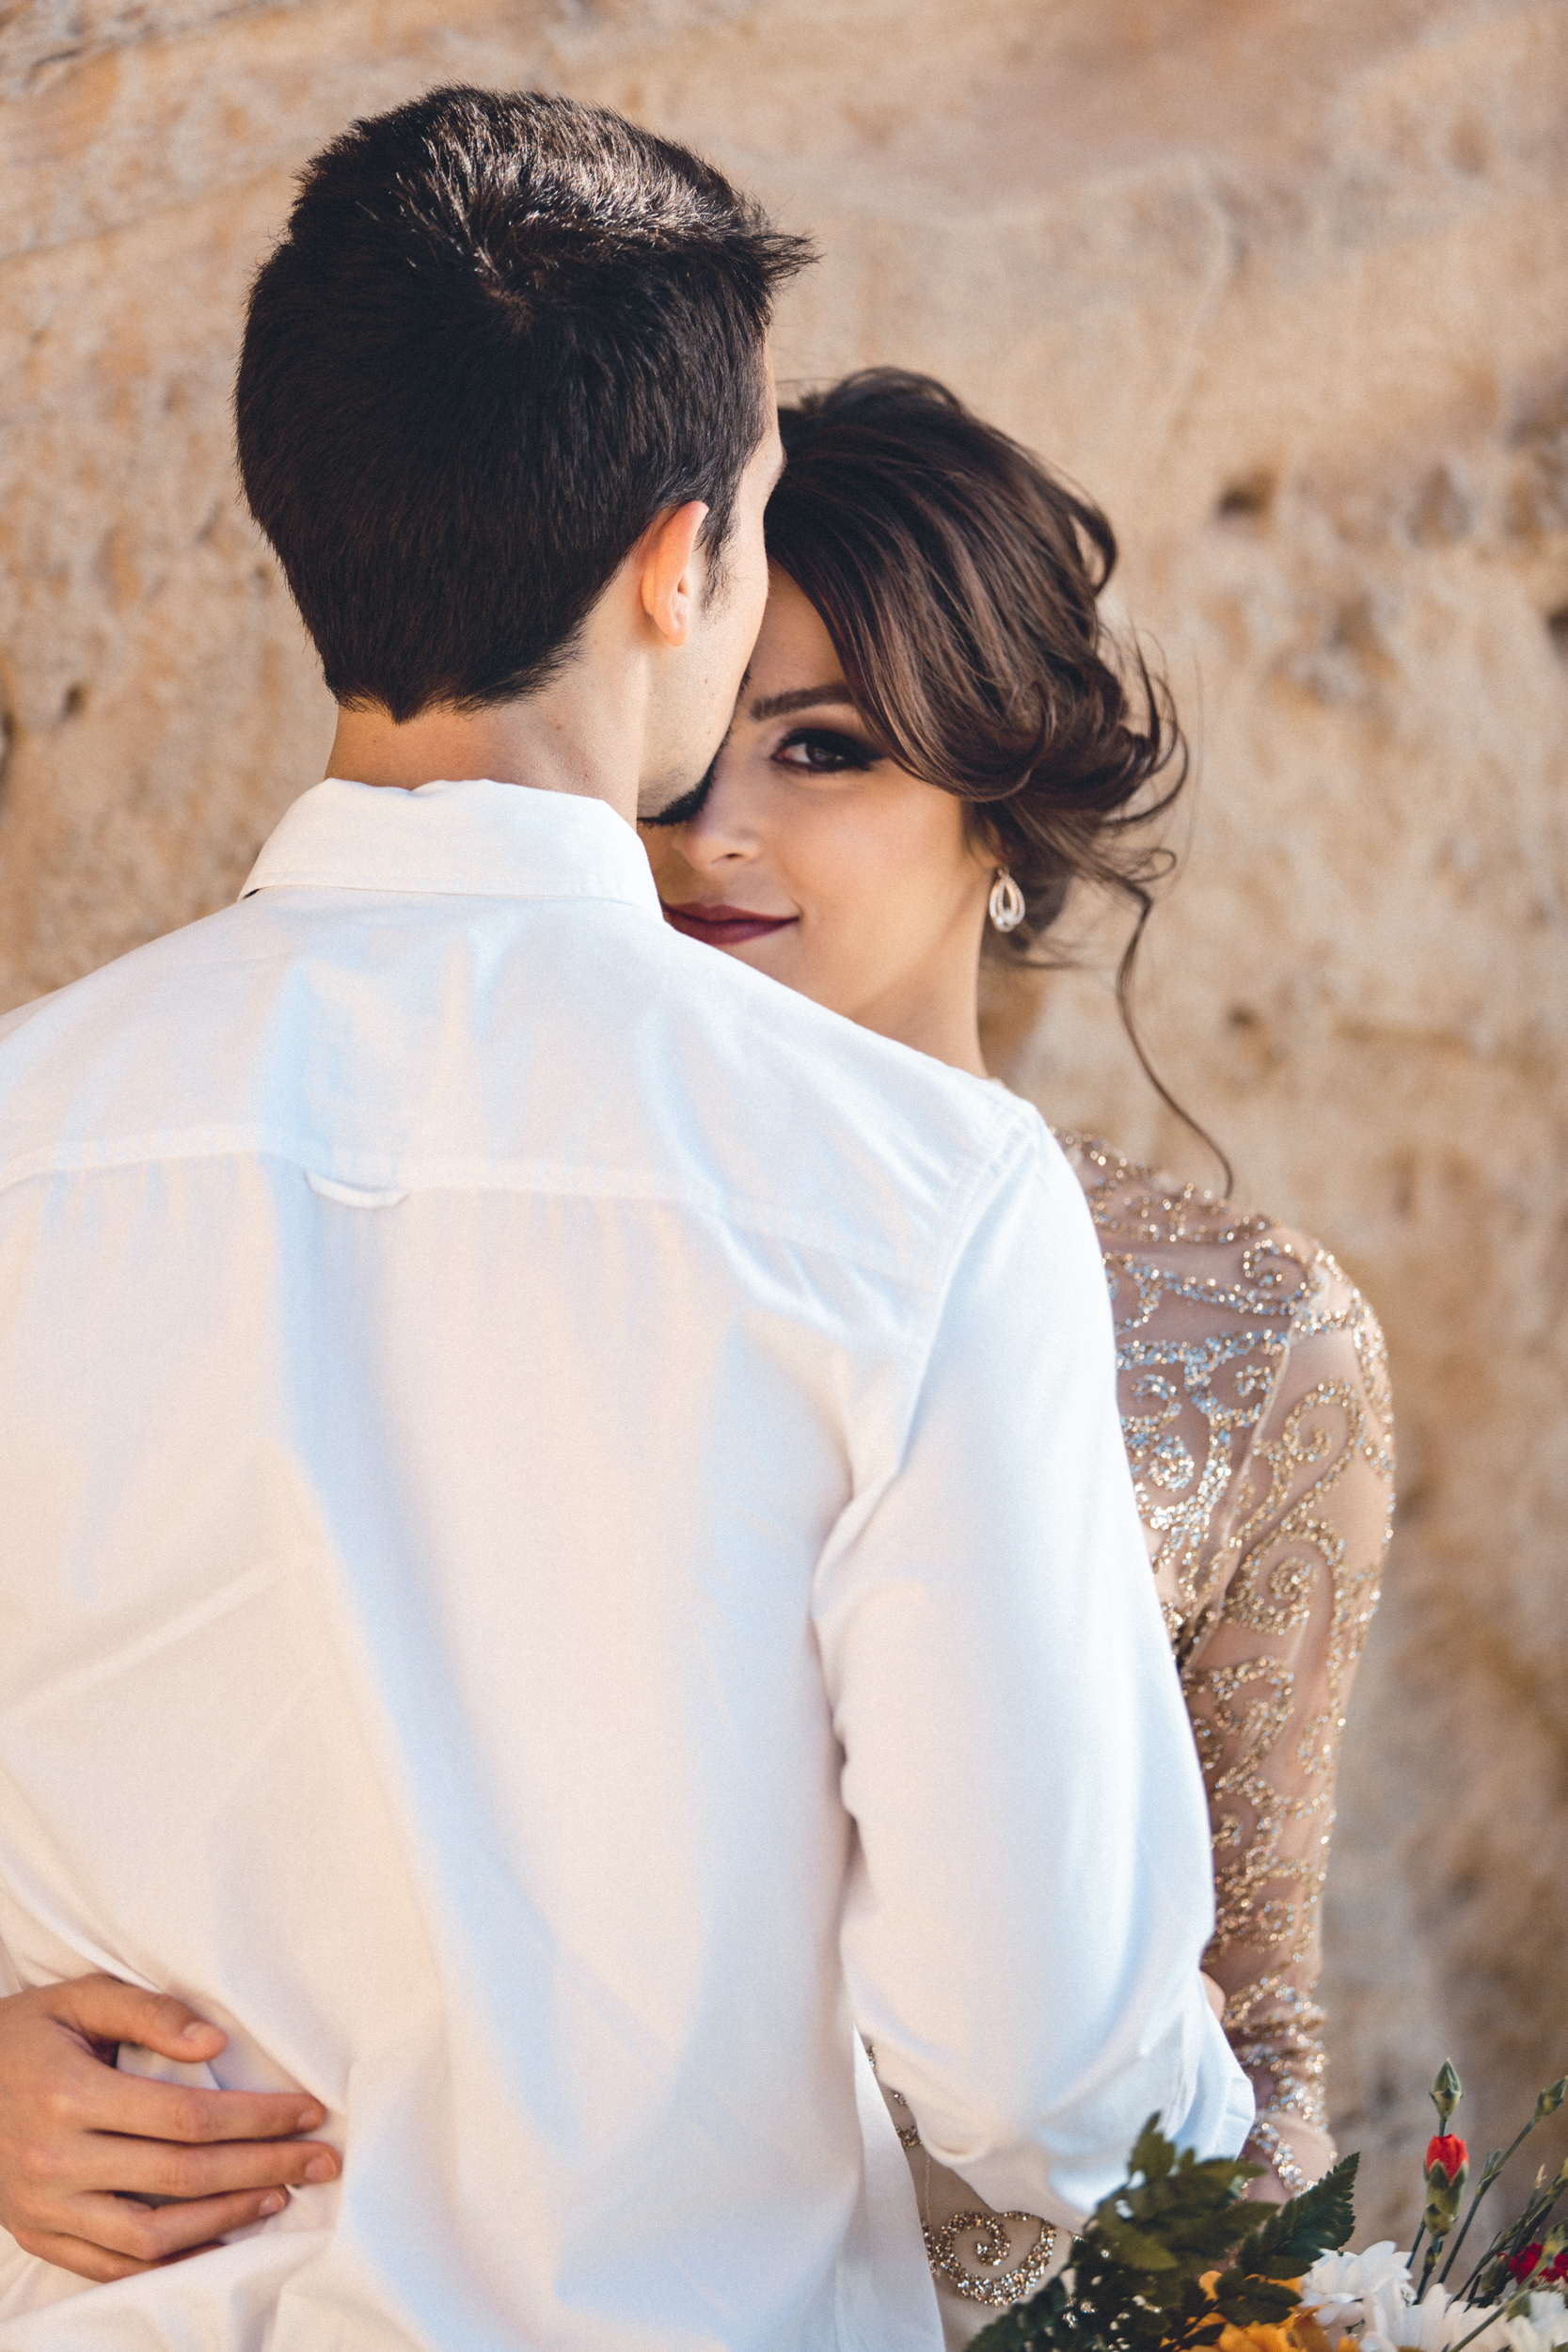 wedding photographer mallorca dominic lula charming look couple photoshoot engagement session